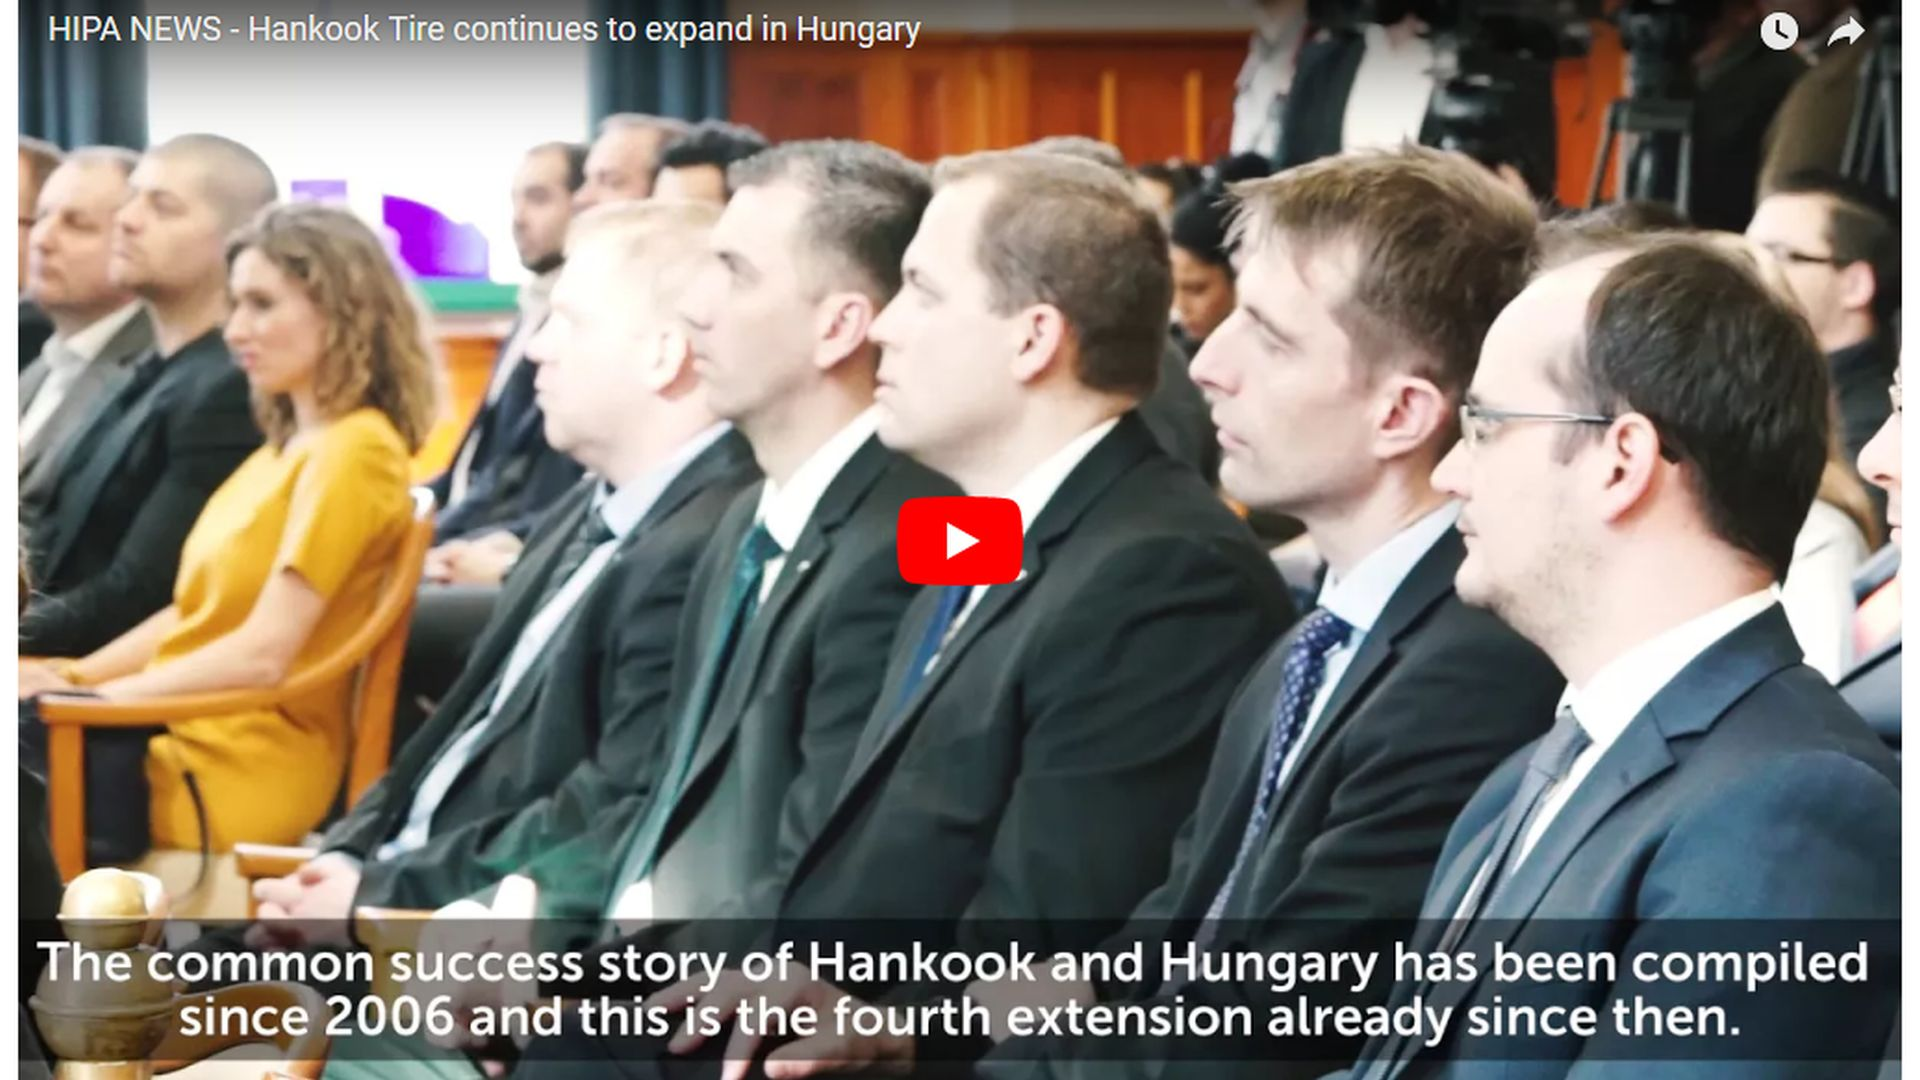 The European production site of Hankook to be extended by a new unit - VIDEO REPORT